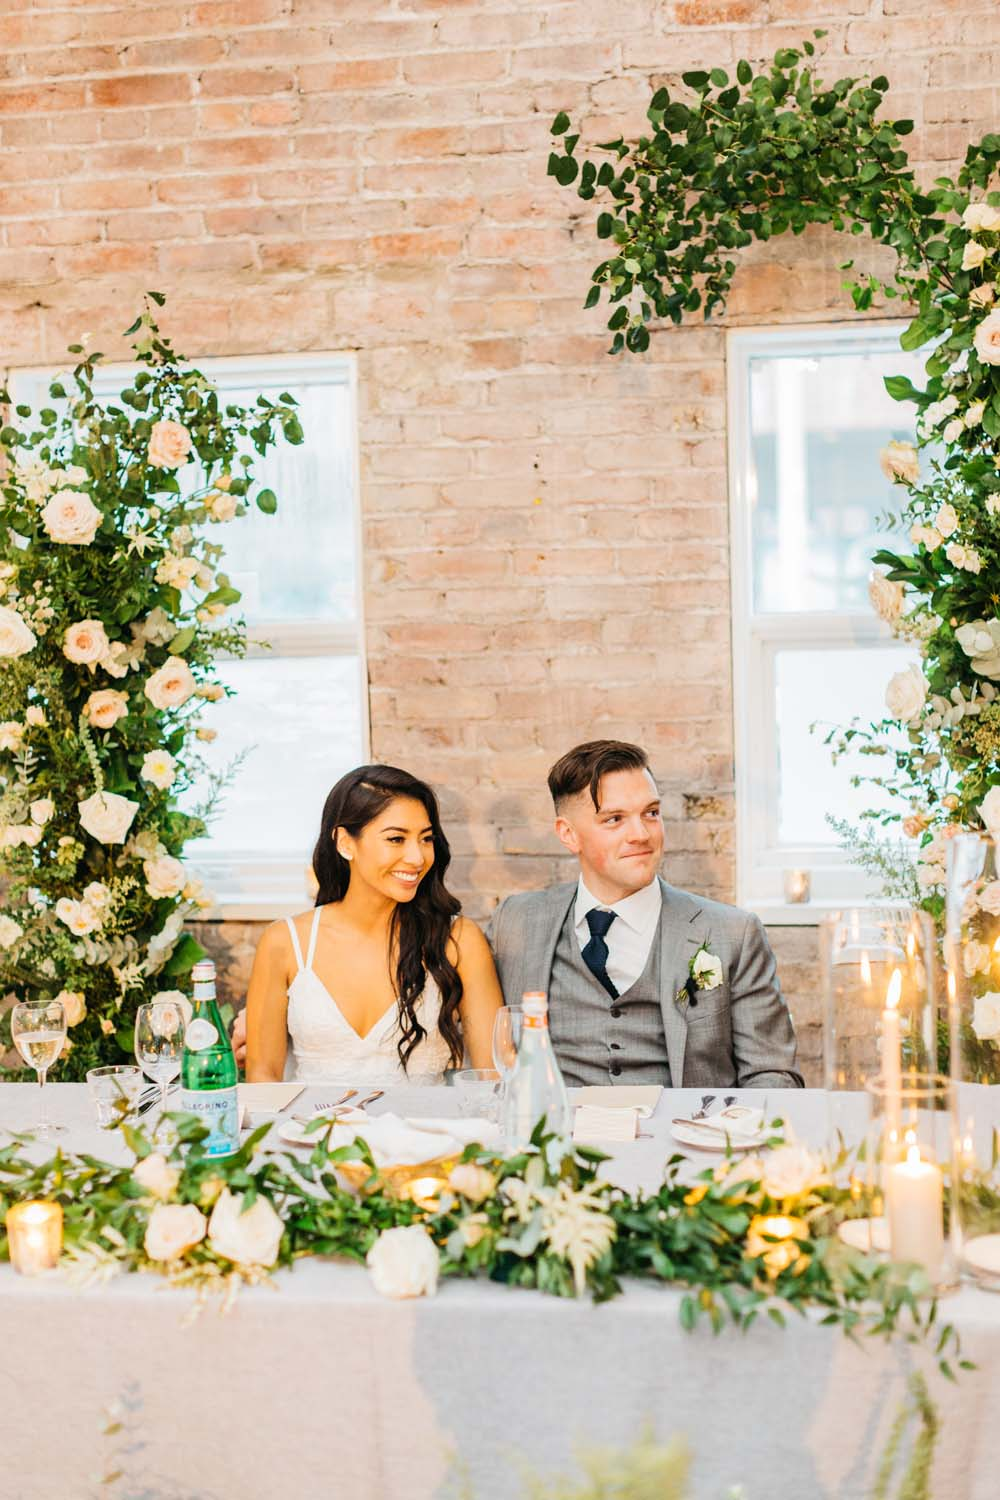 A Bright and Airy September Wedding in Toronto, Ontario - Newlyweds